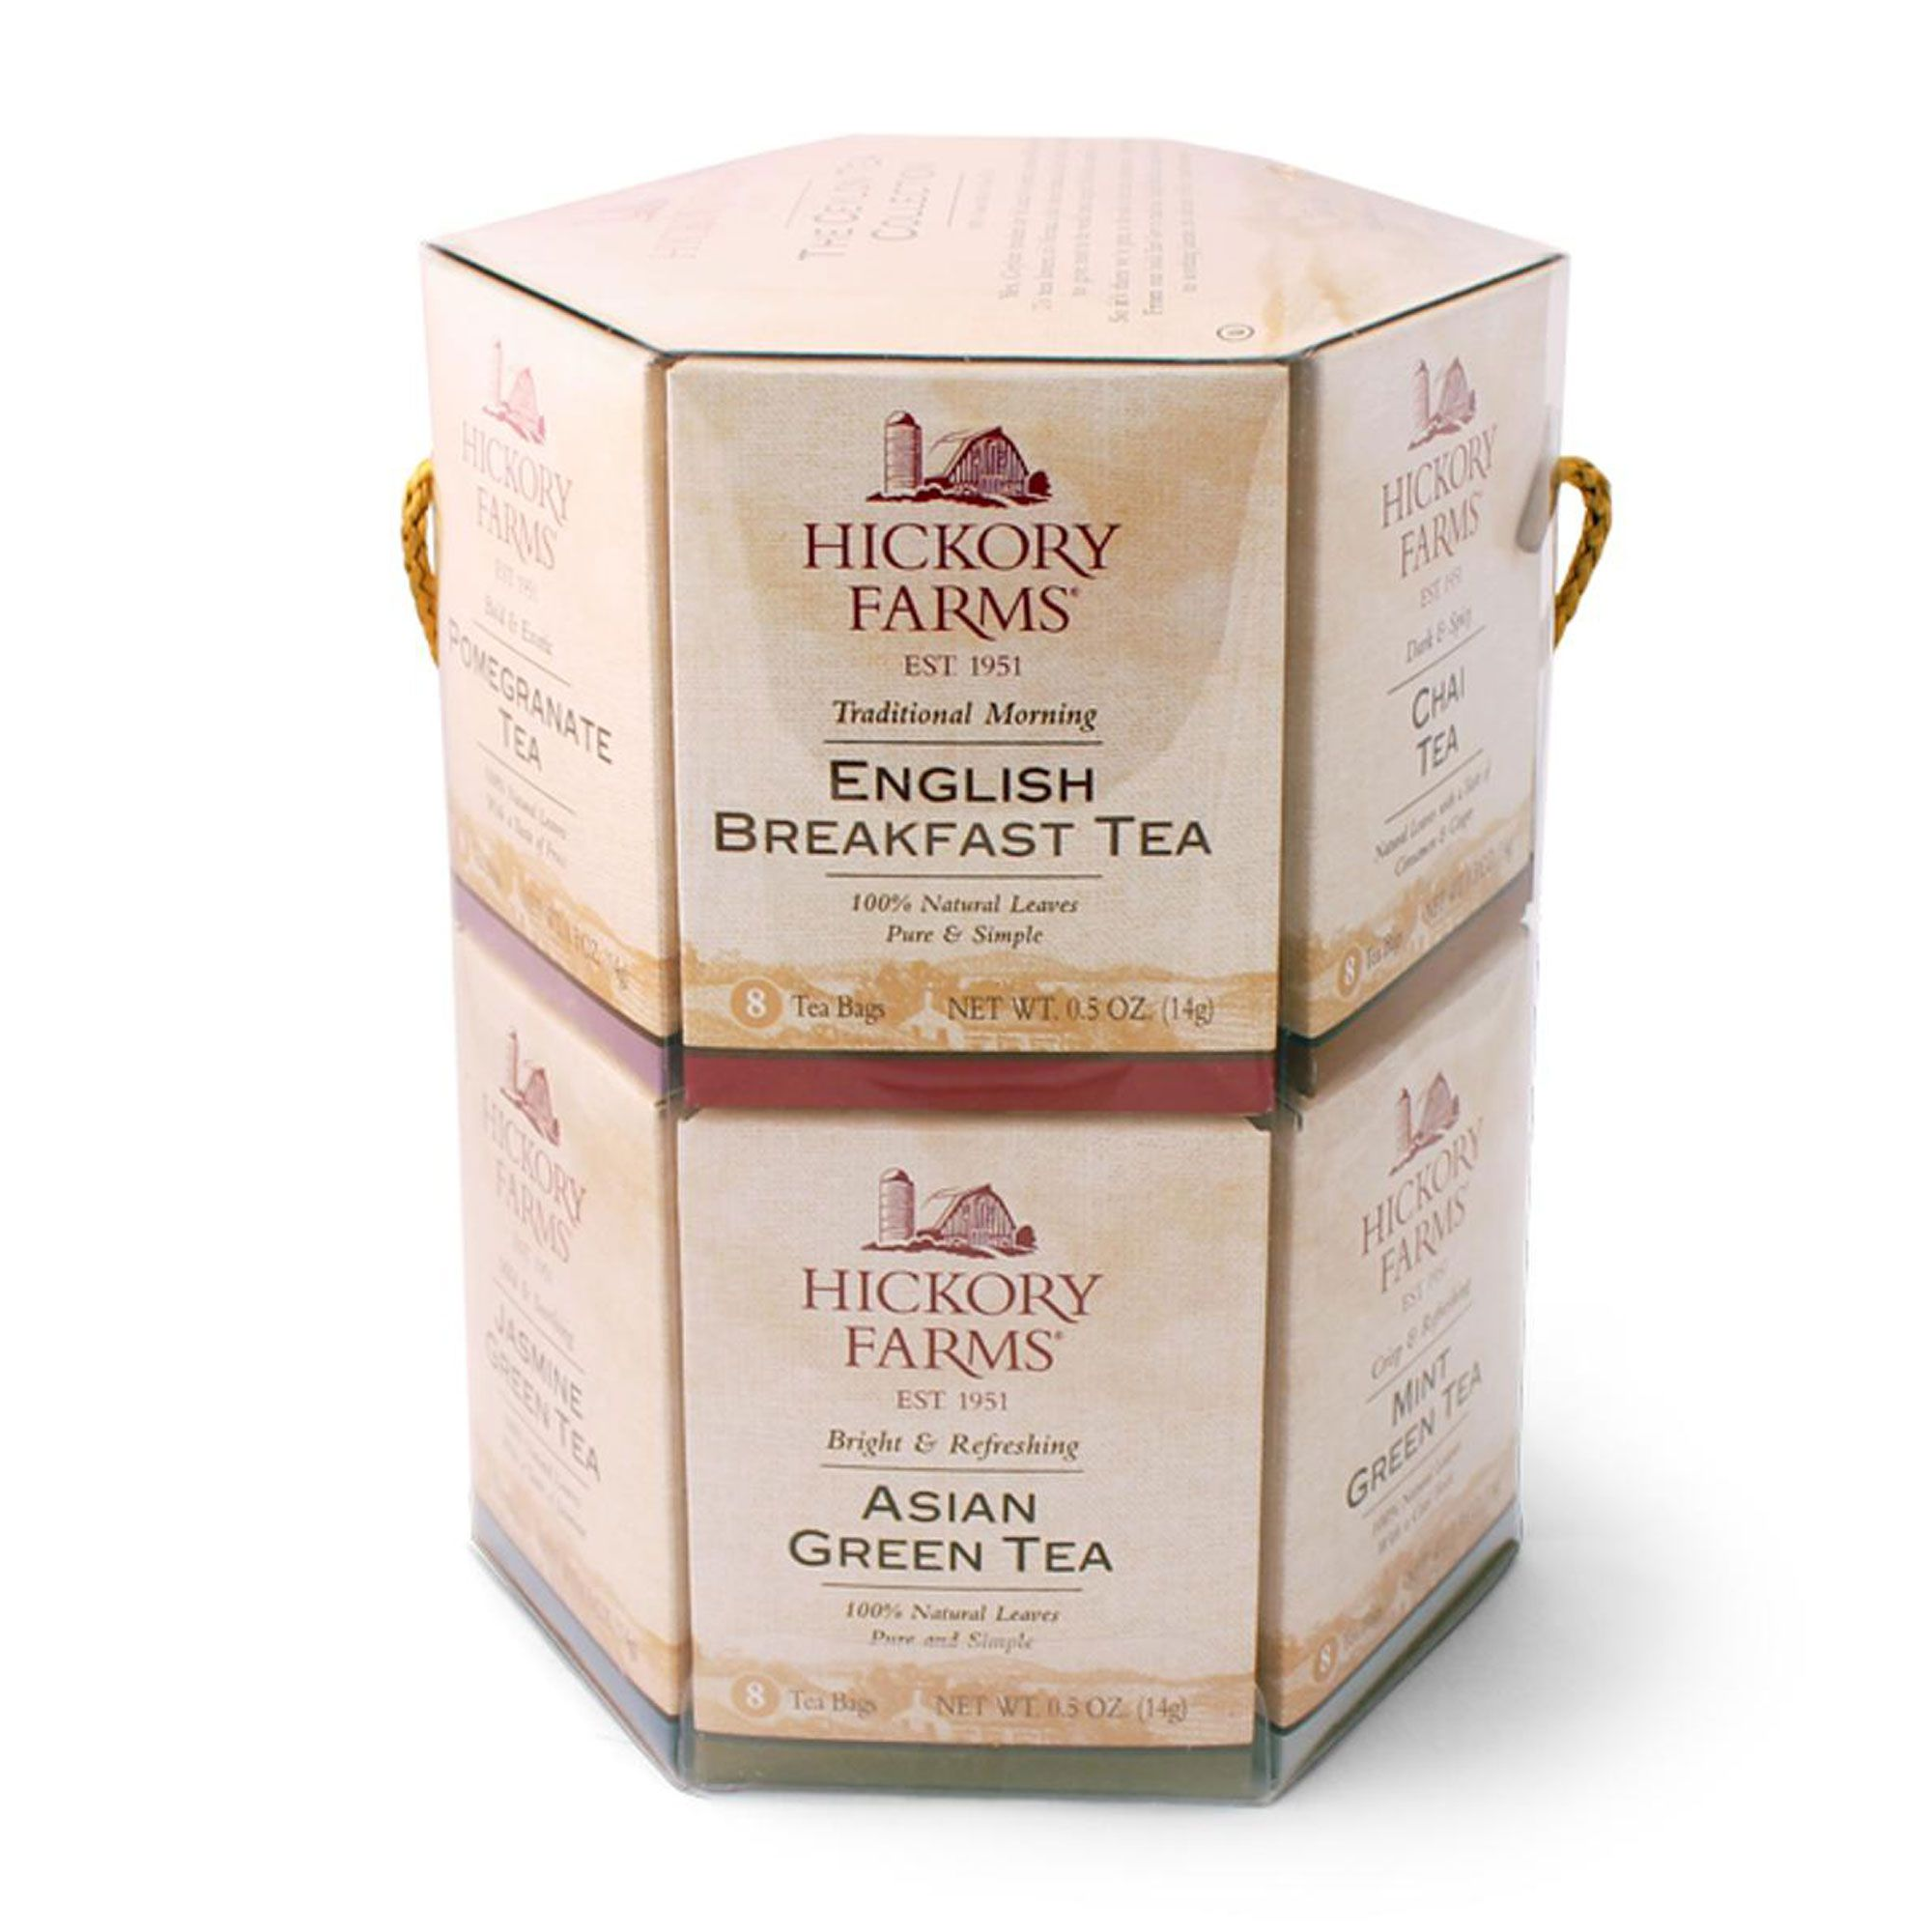 Ceylon tea collection gift purchase our essential from hickory ceylon tea collection gift purchase our essential from hickory farms gluten free negle Choice Image